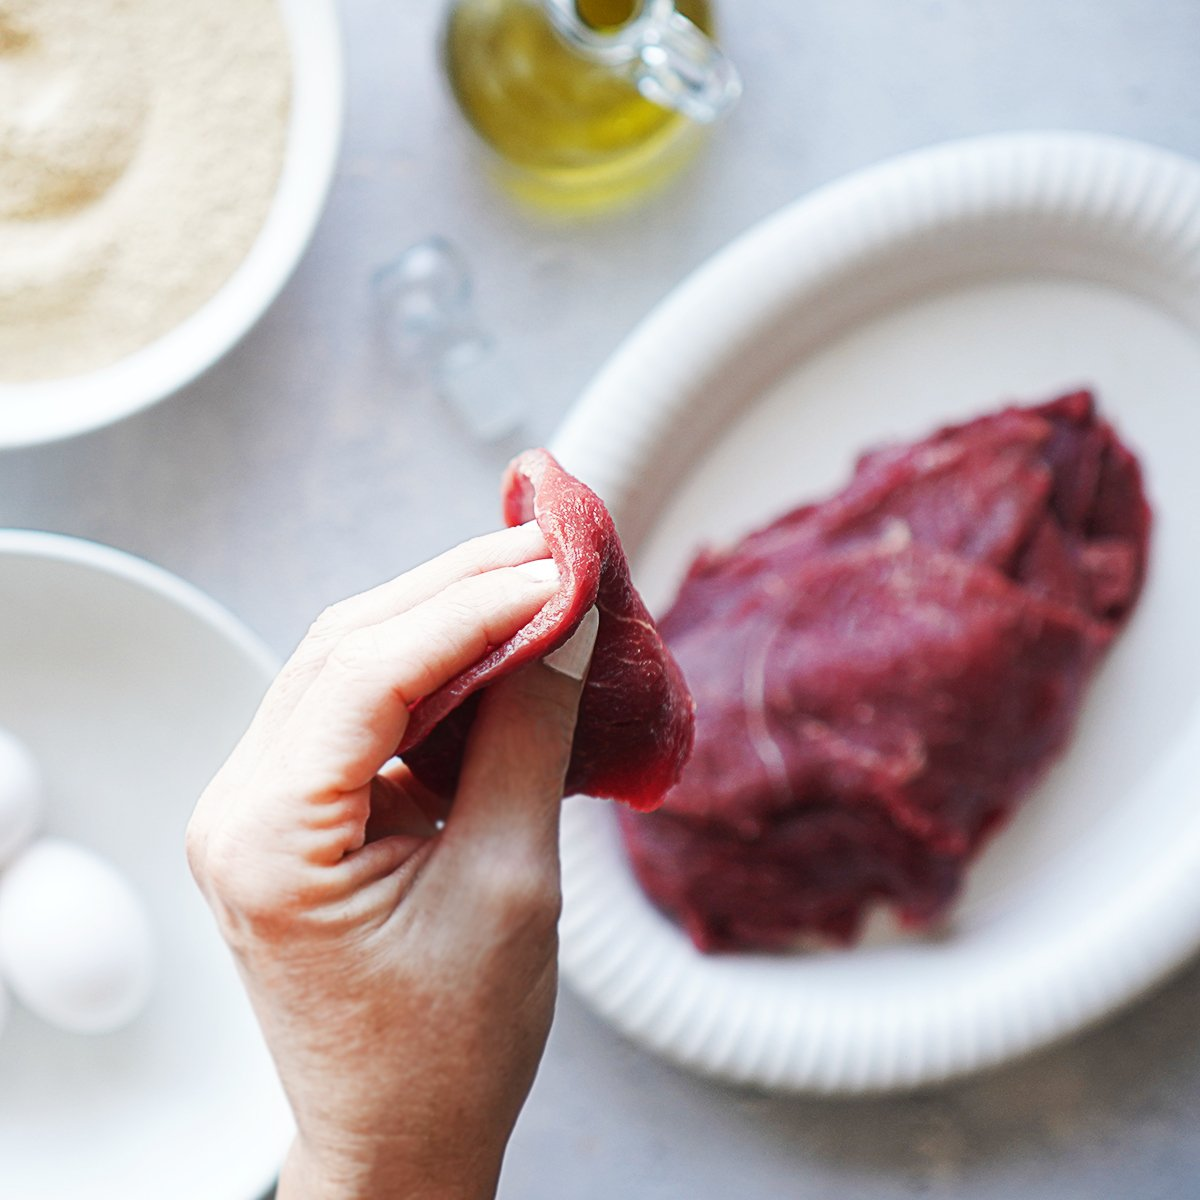 Think steak cut held by a hand.